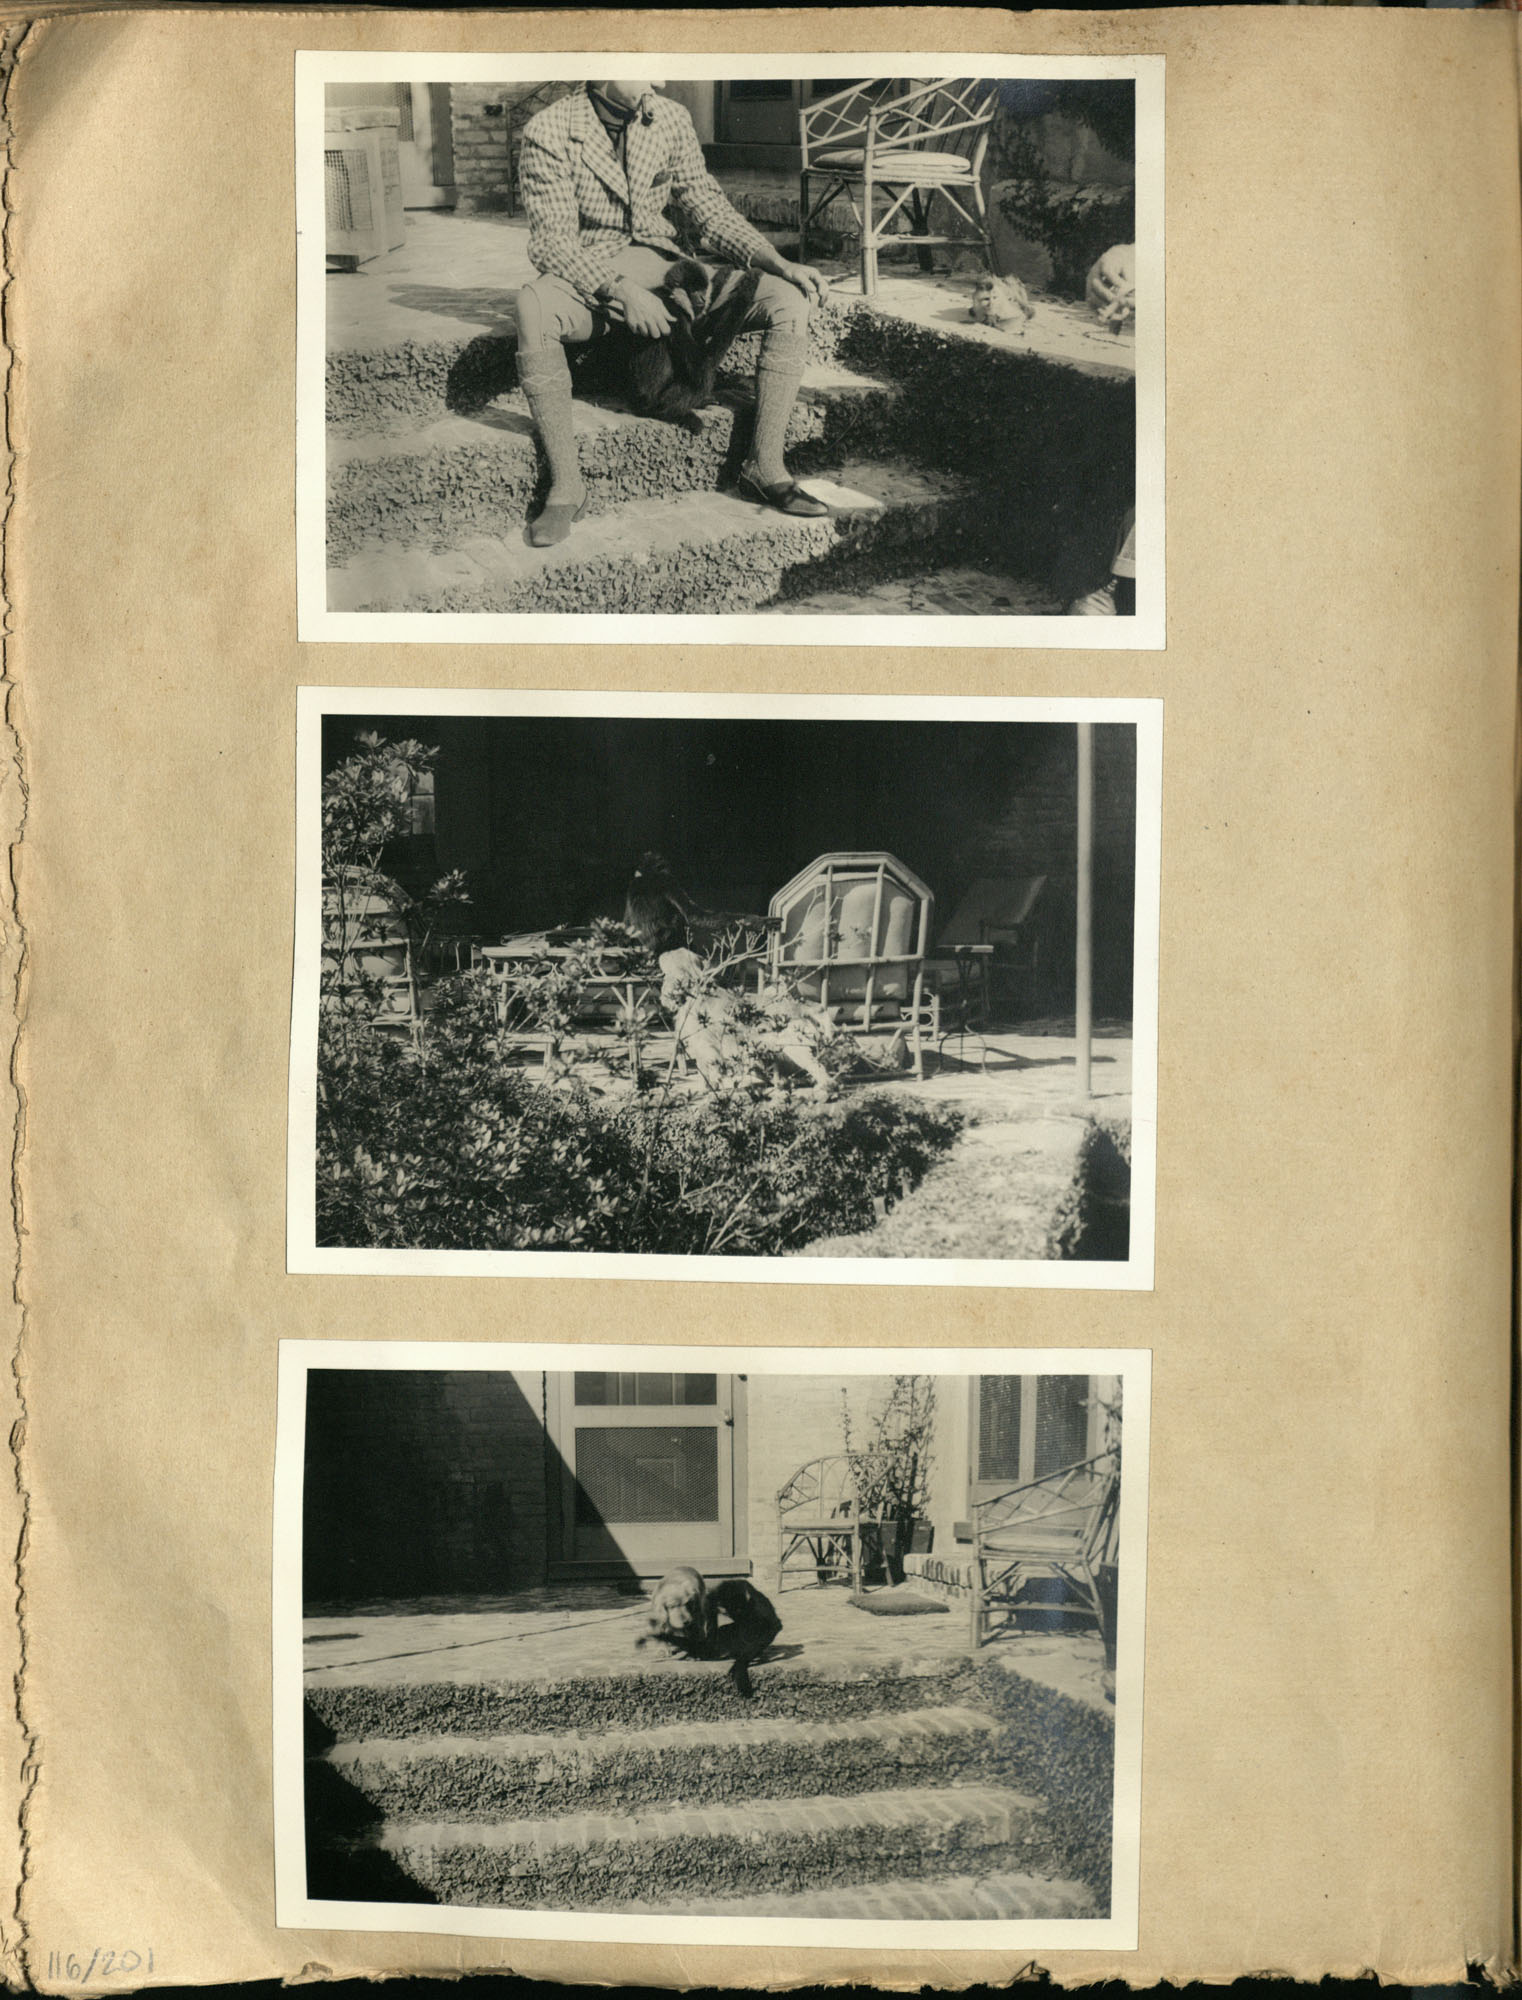 Early Medway and travels album, 1929-1937, page 116